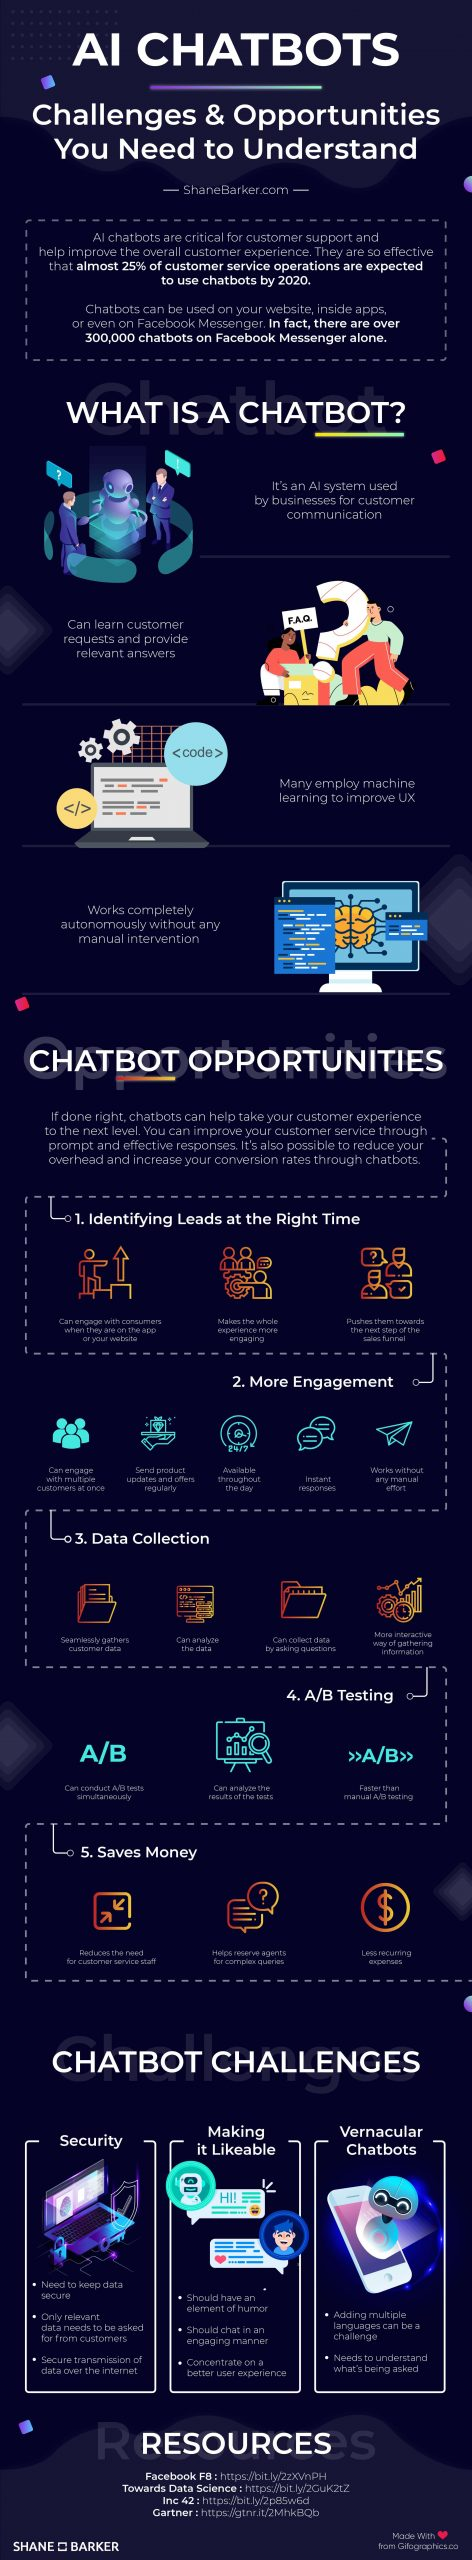 AI Chatbots Infographic compressed